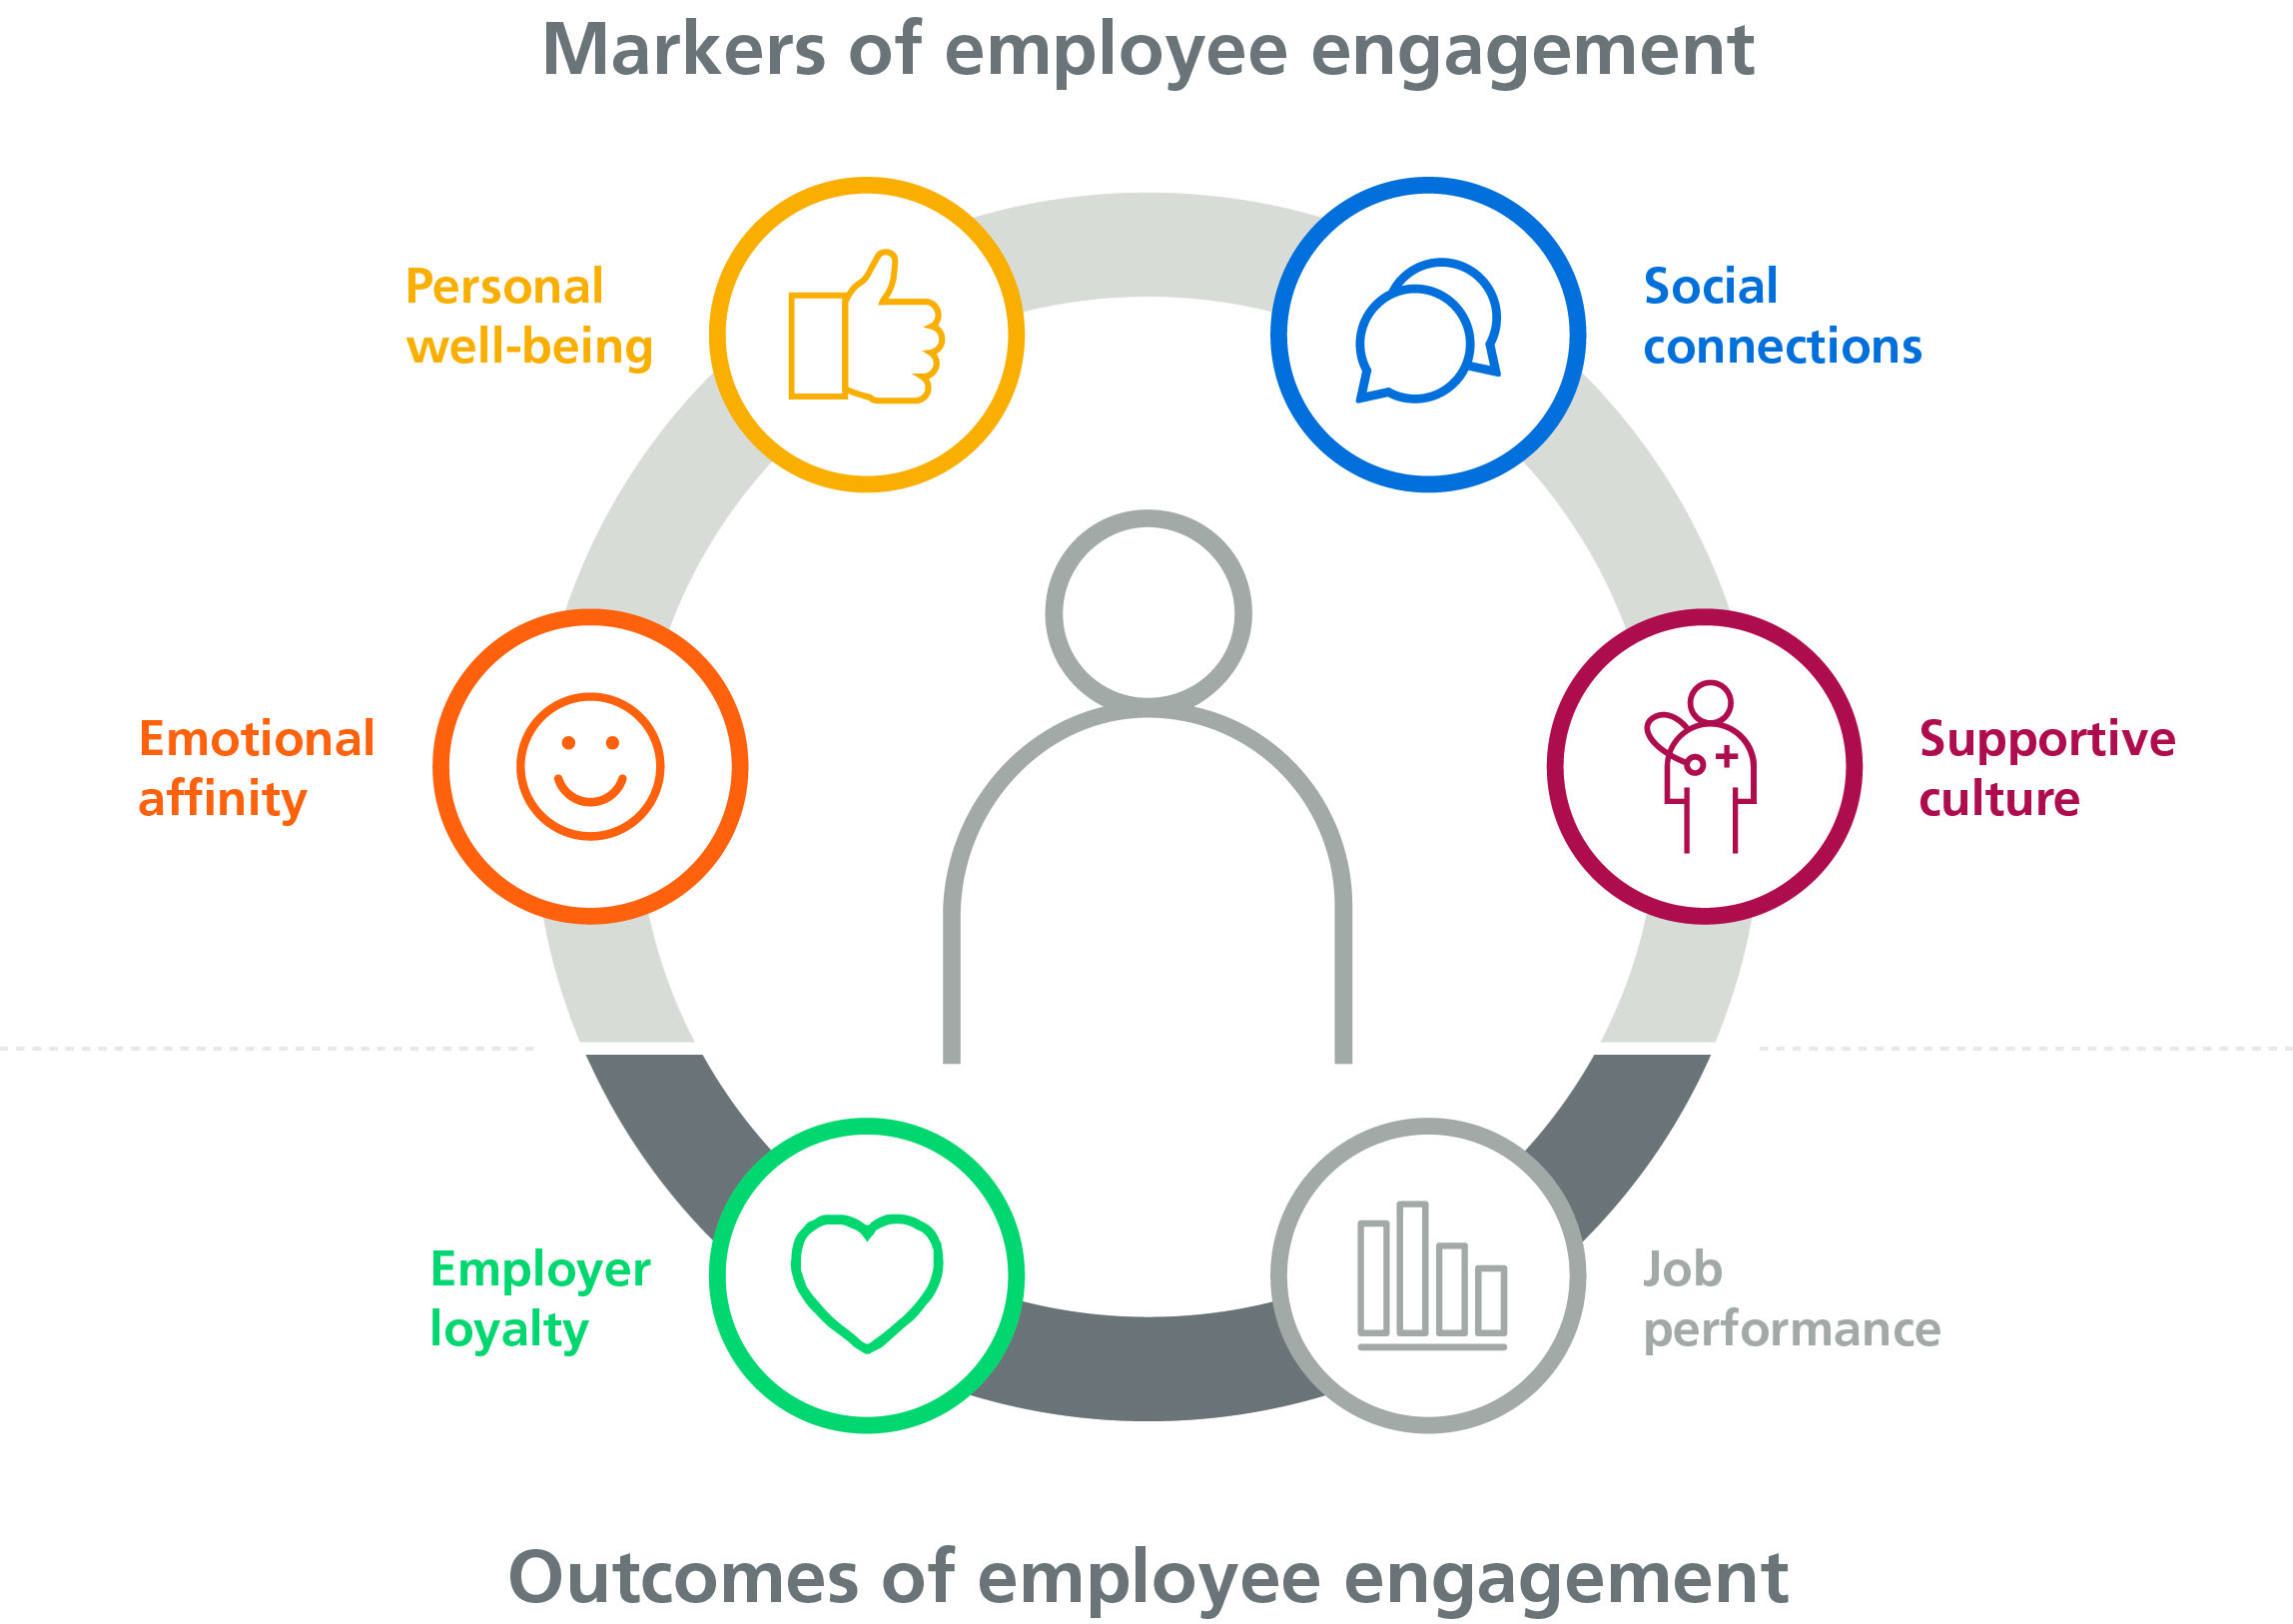 infographic markers of employee engagement